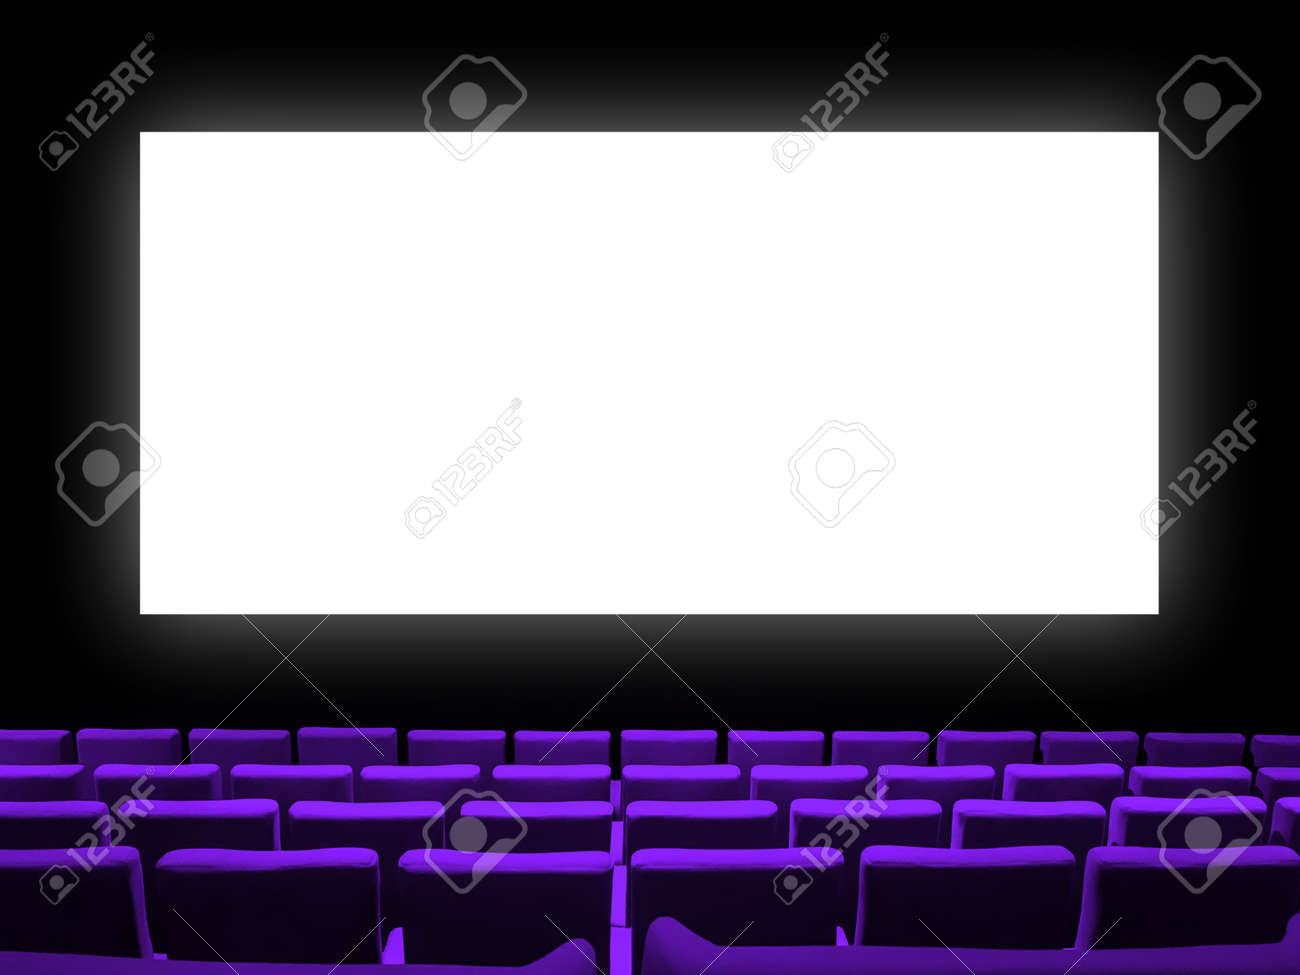 Cinema movie theatre with purple velvet seats and a blank white screen. Copy space background - 167919851